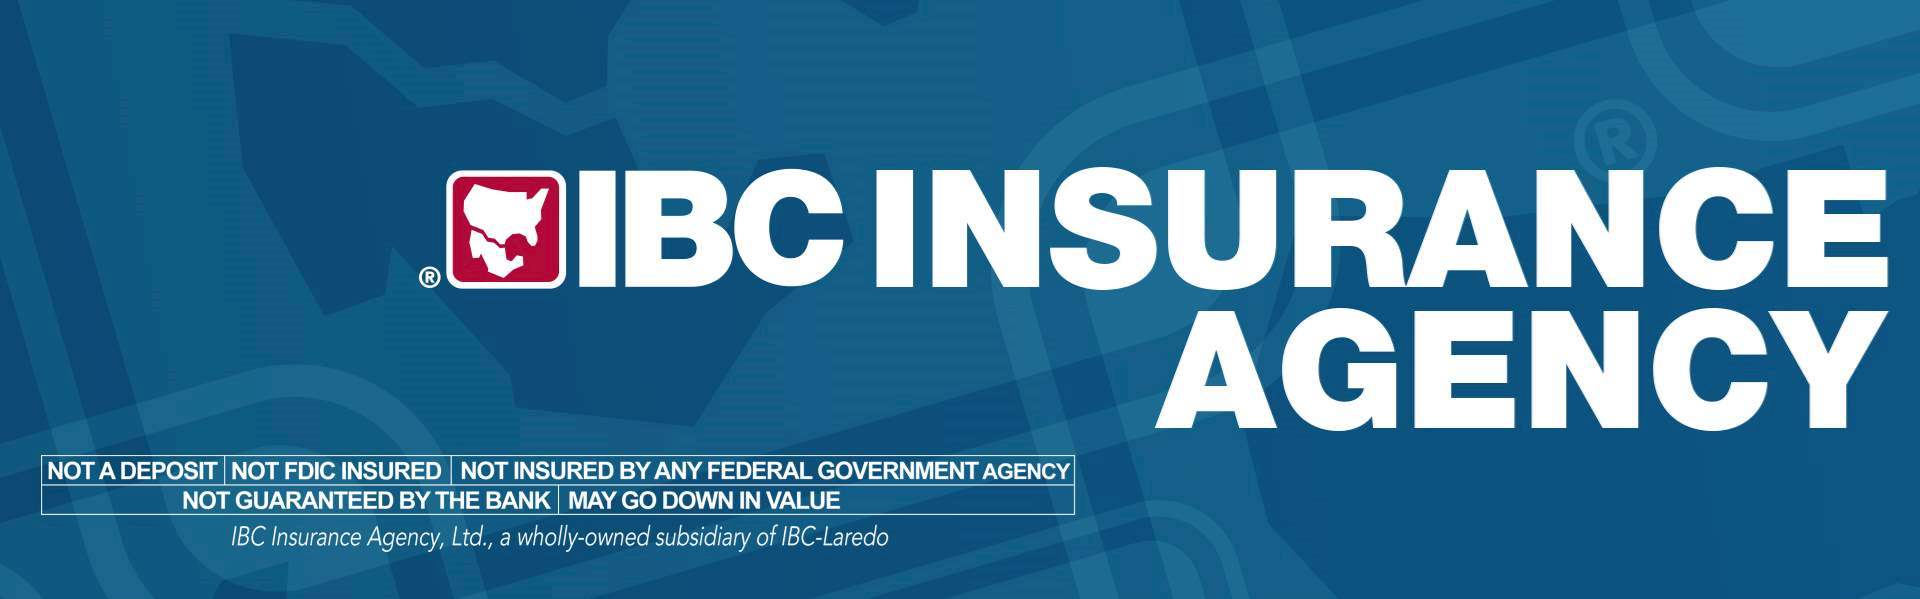 IBC Bank Insurance Officers